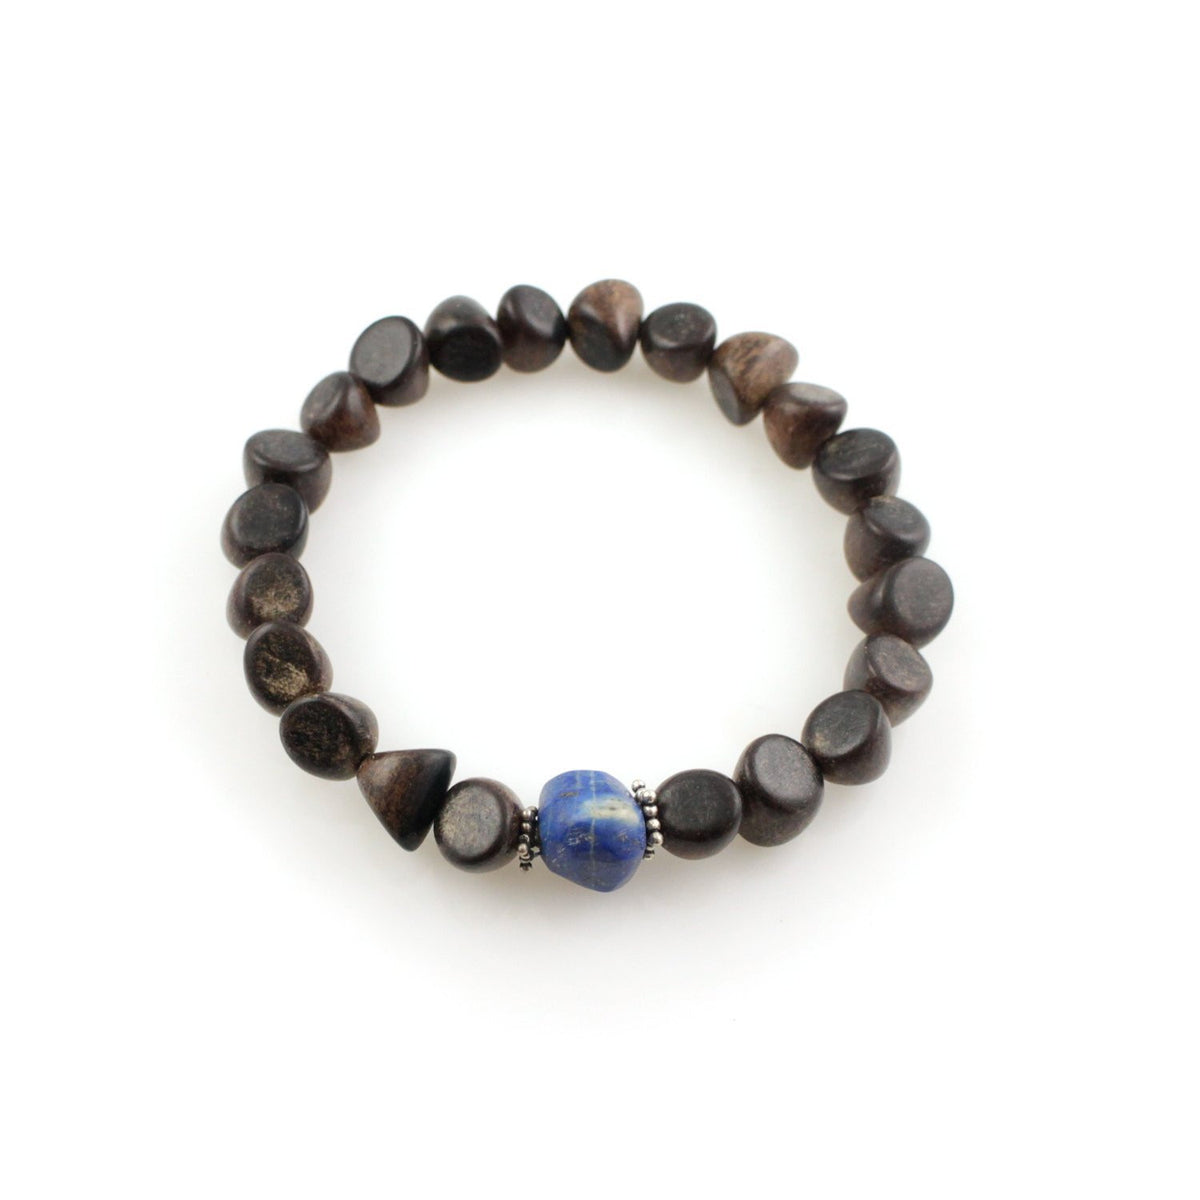 Formless Series: Mala Bracelet with Afghan Lapis Lazuli, Brown Ebony, Sterling Silver Accents (Large - 8 inches)